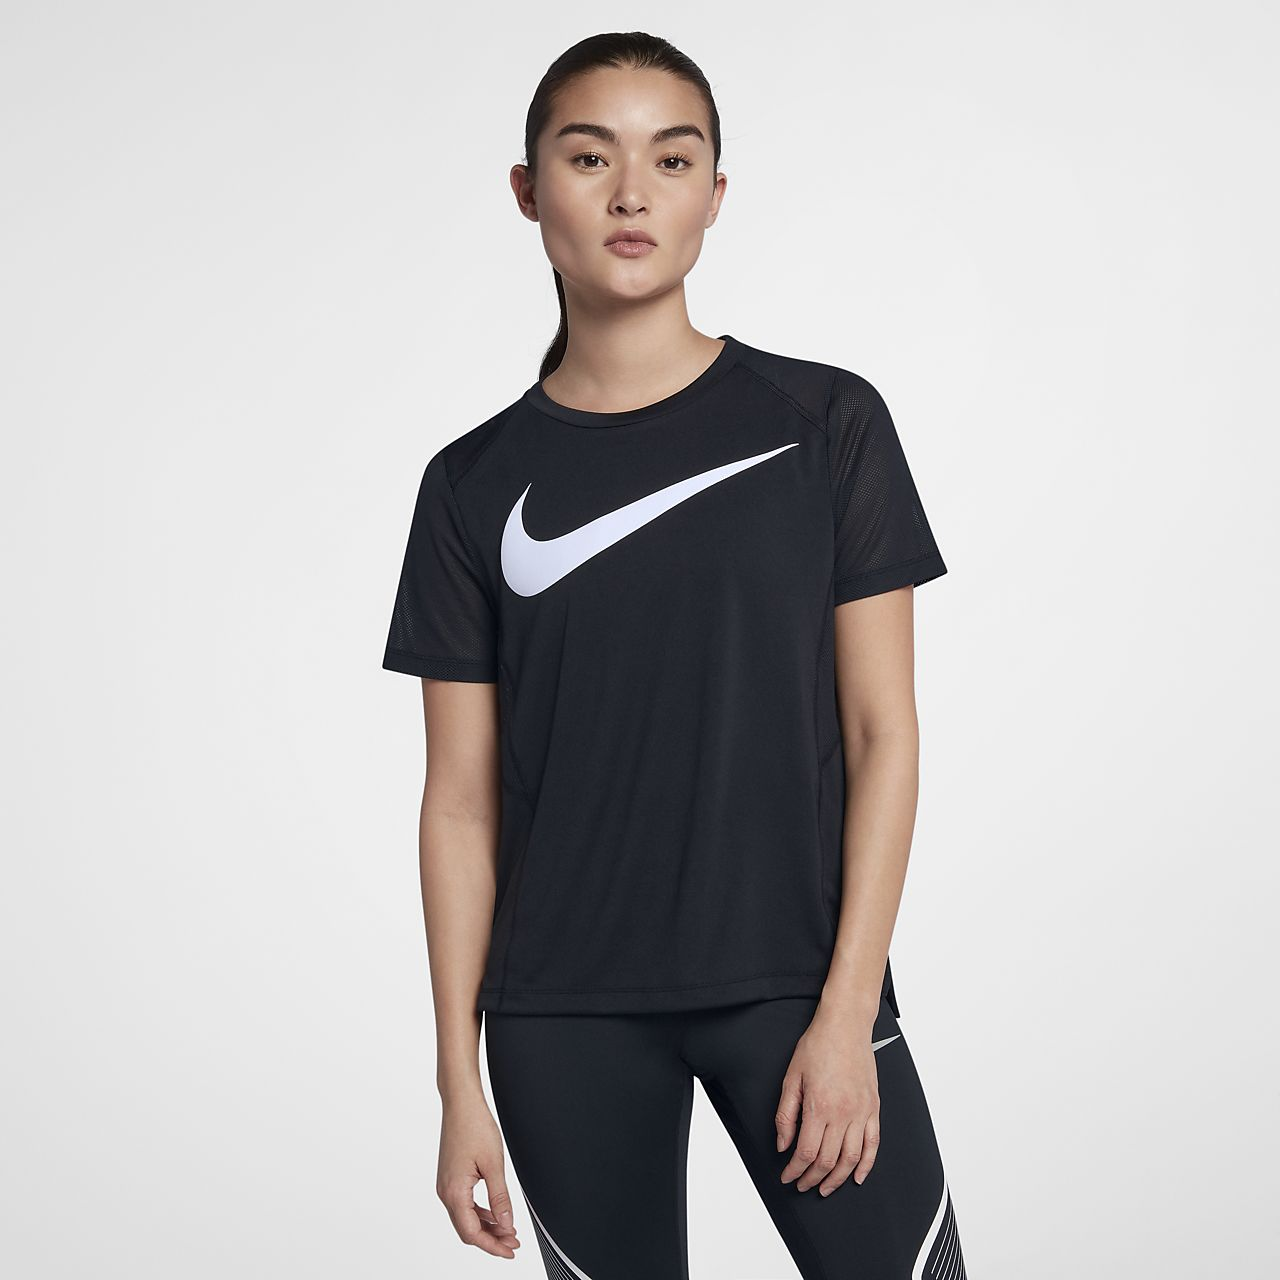 167872ee Nike Miler Women's Short-Sleeve Running Top. Nike.com NZ